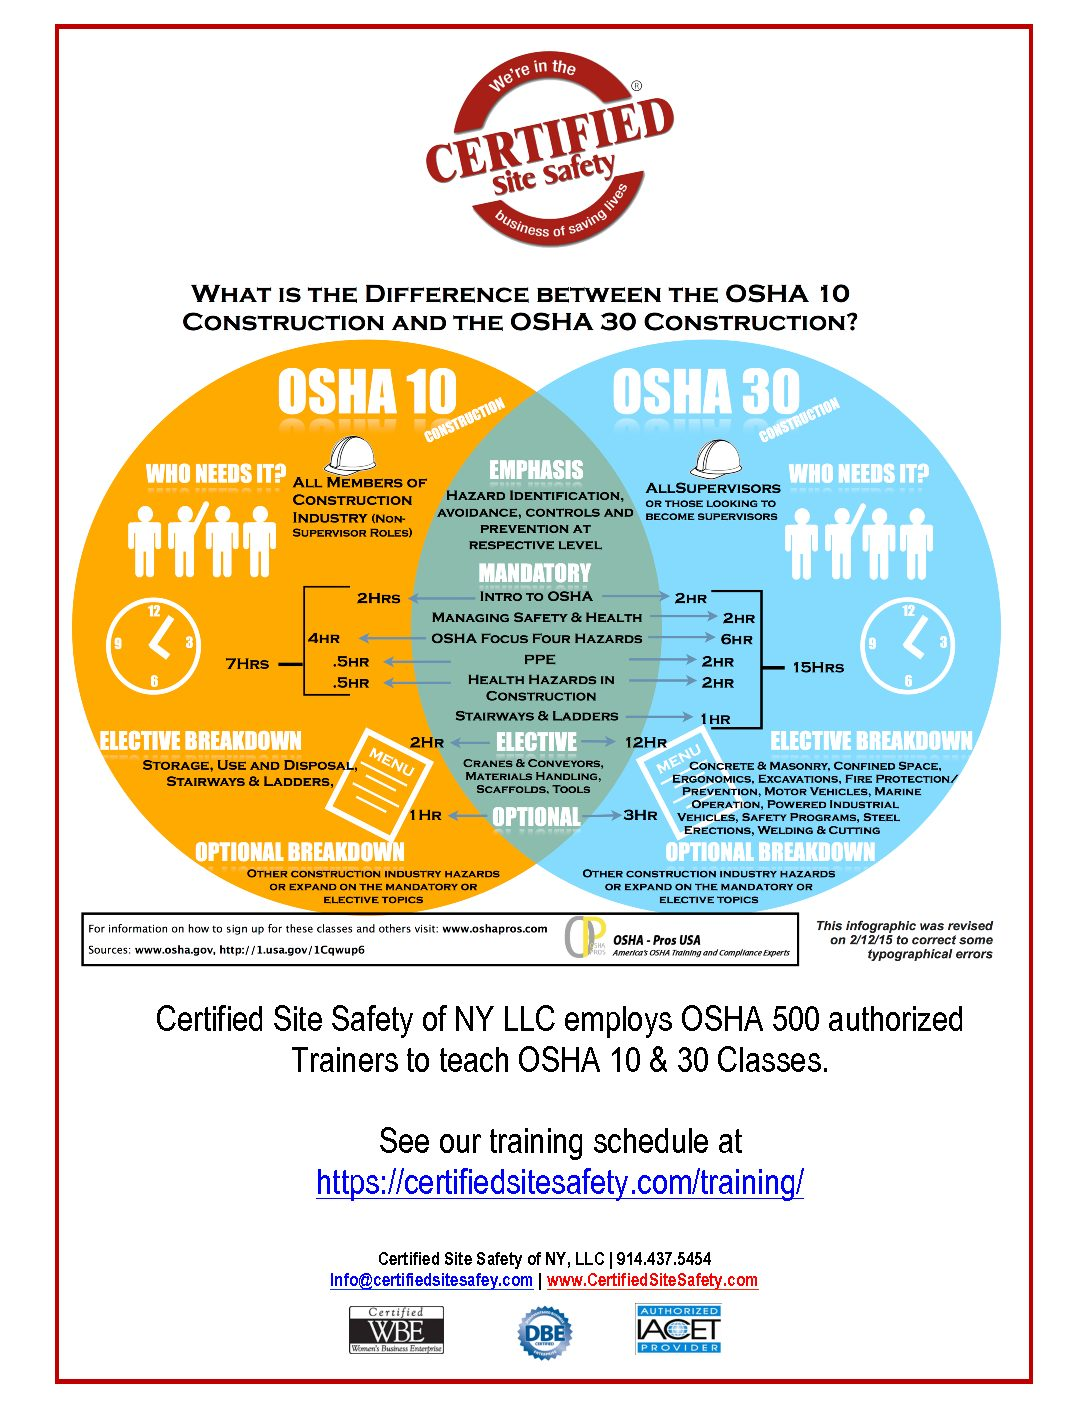 Latest News For Construction Site Safety Certified Site Safety